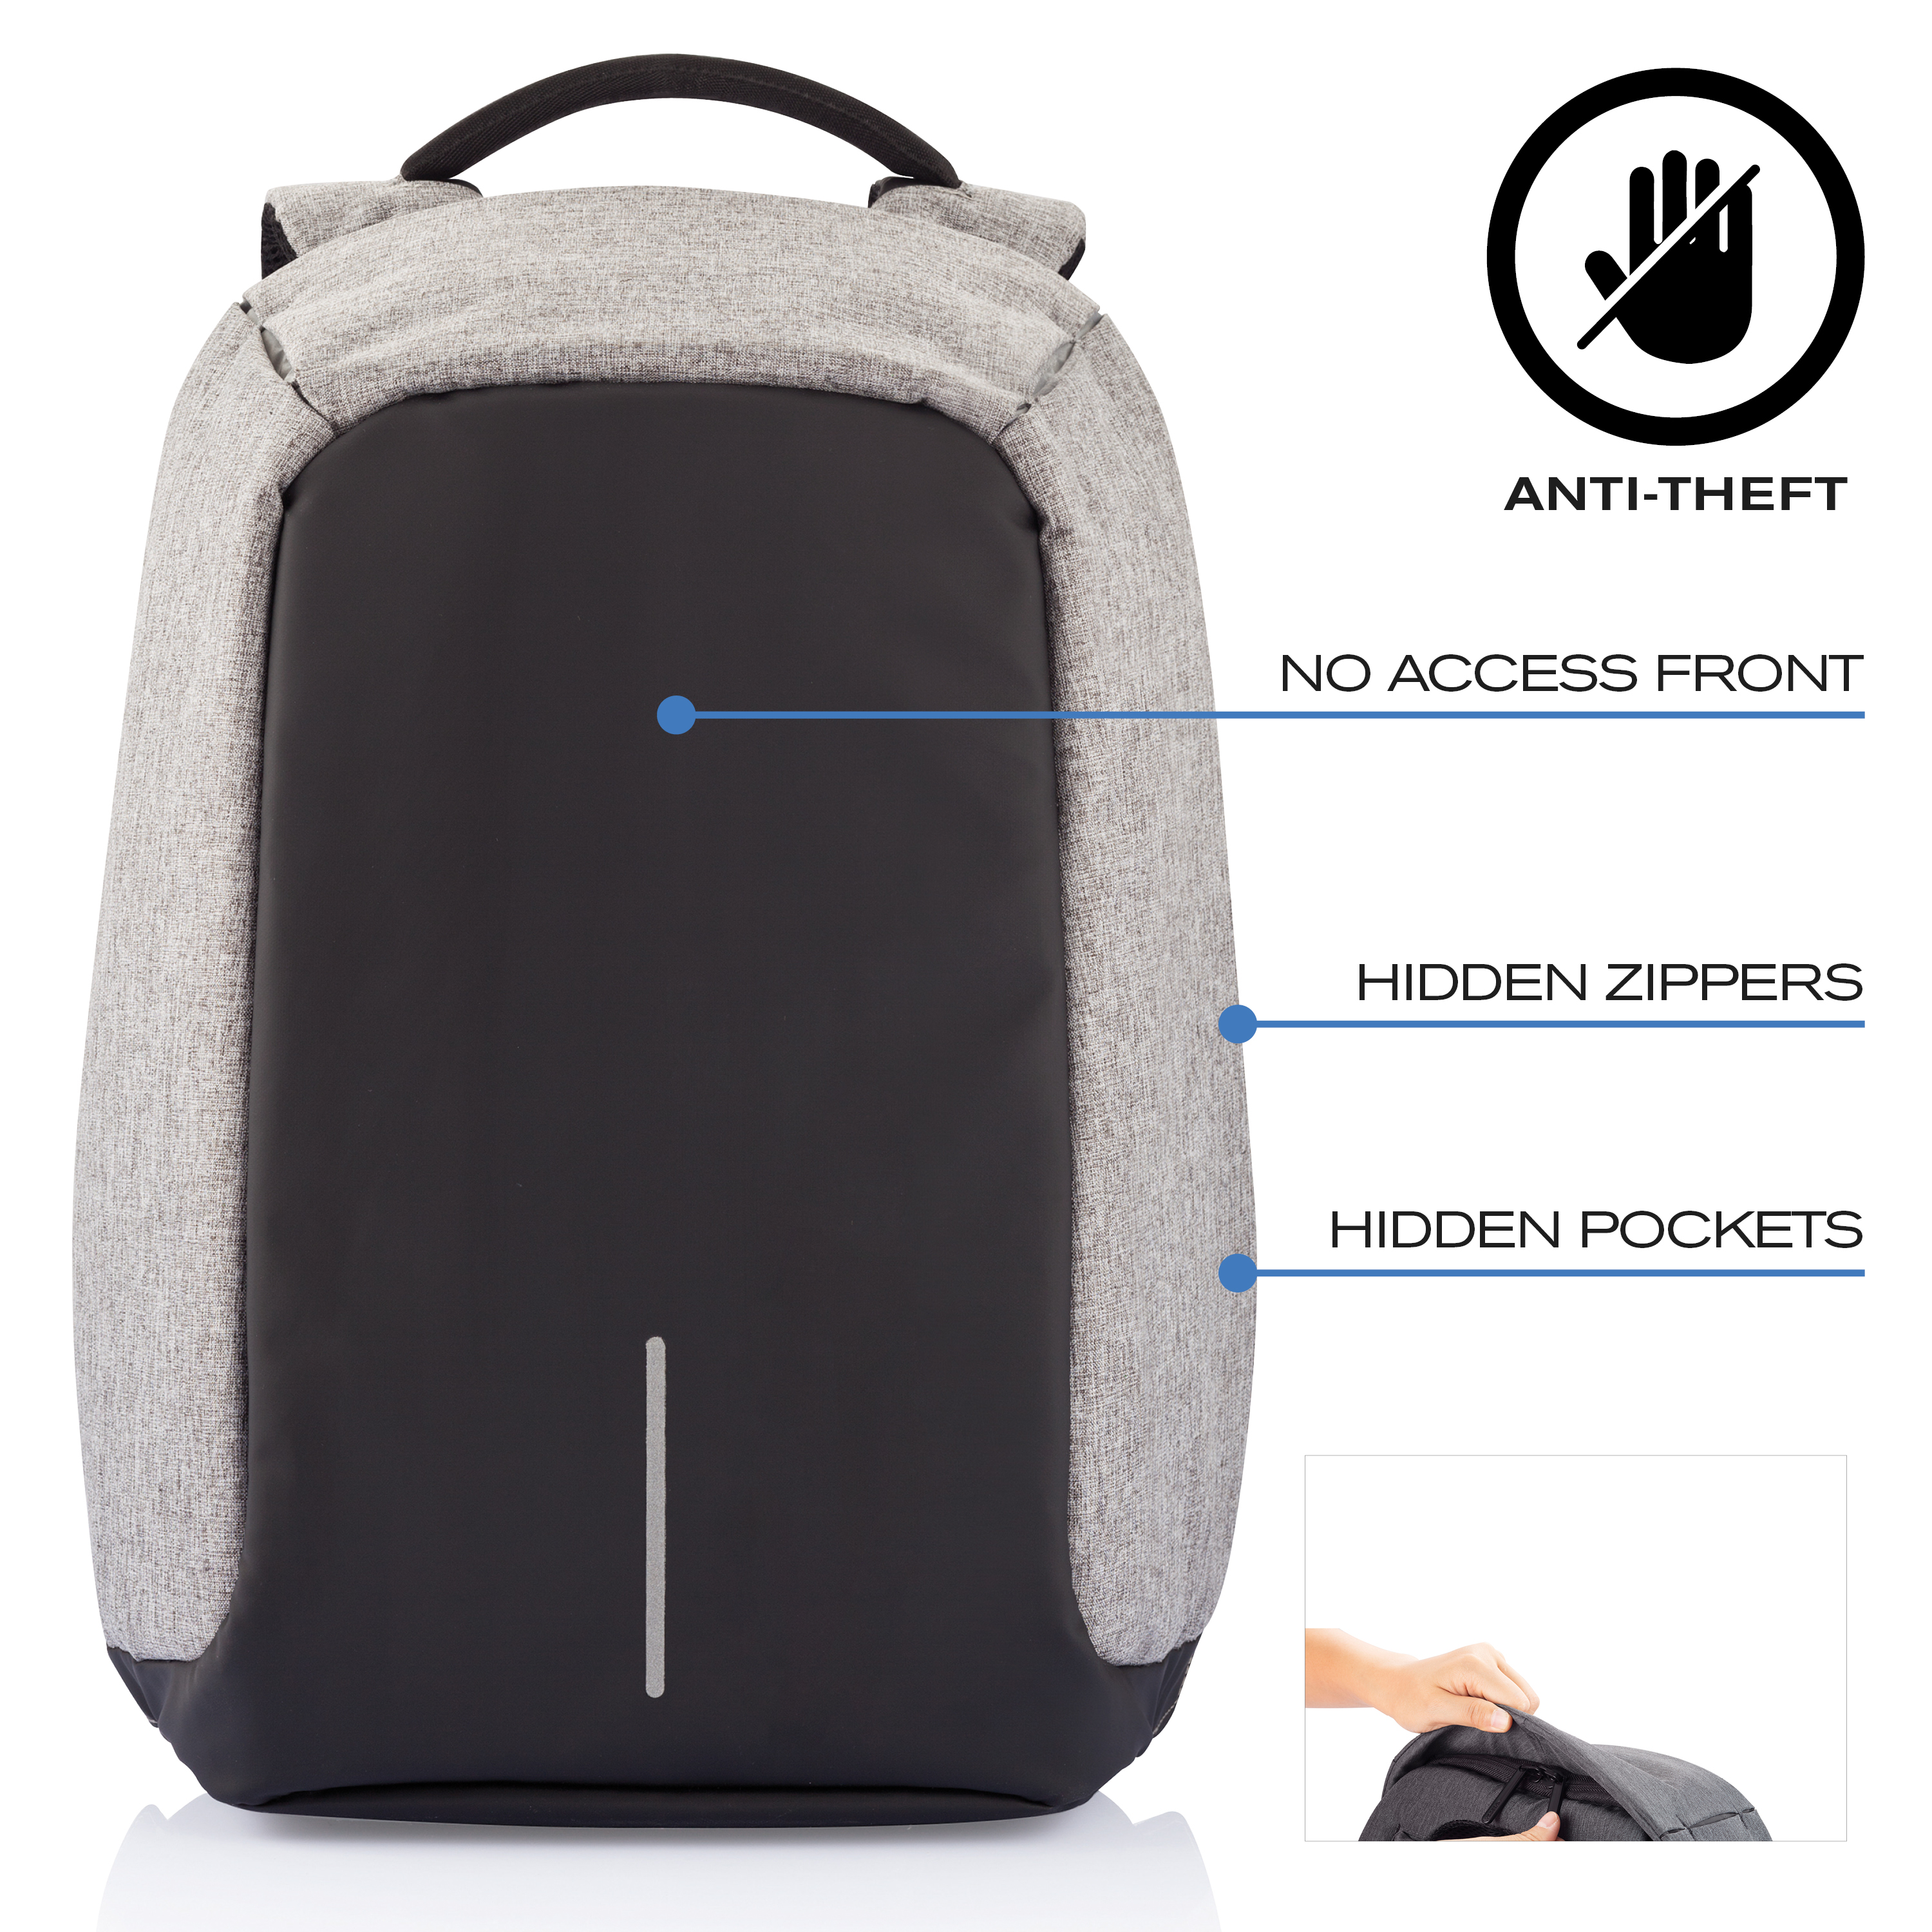 XD-Design-Bobby-XL-17-034-Anti-Theft-Laptop-Backpack-with-USB-Port-Unisex-Bag thumbnail 13